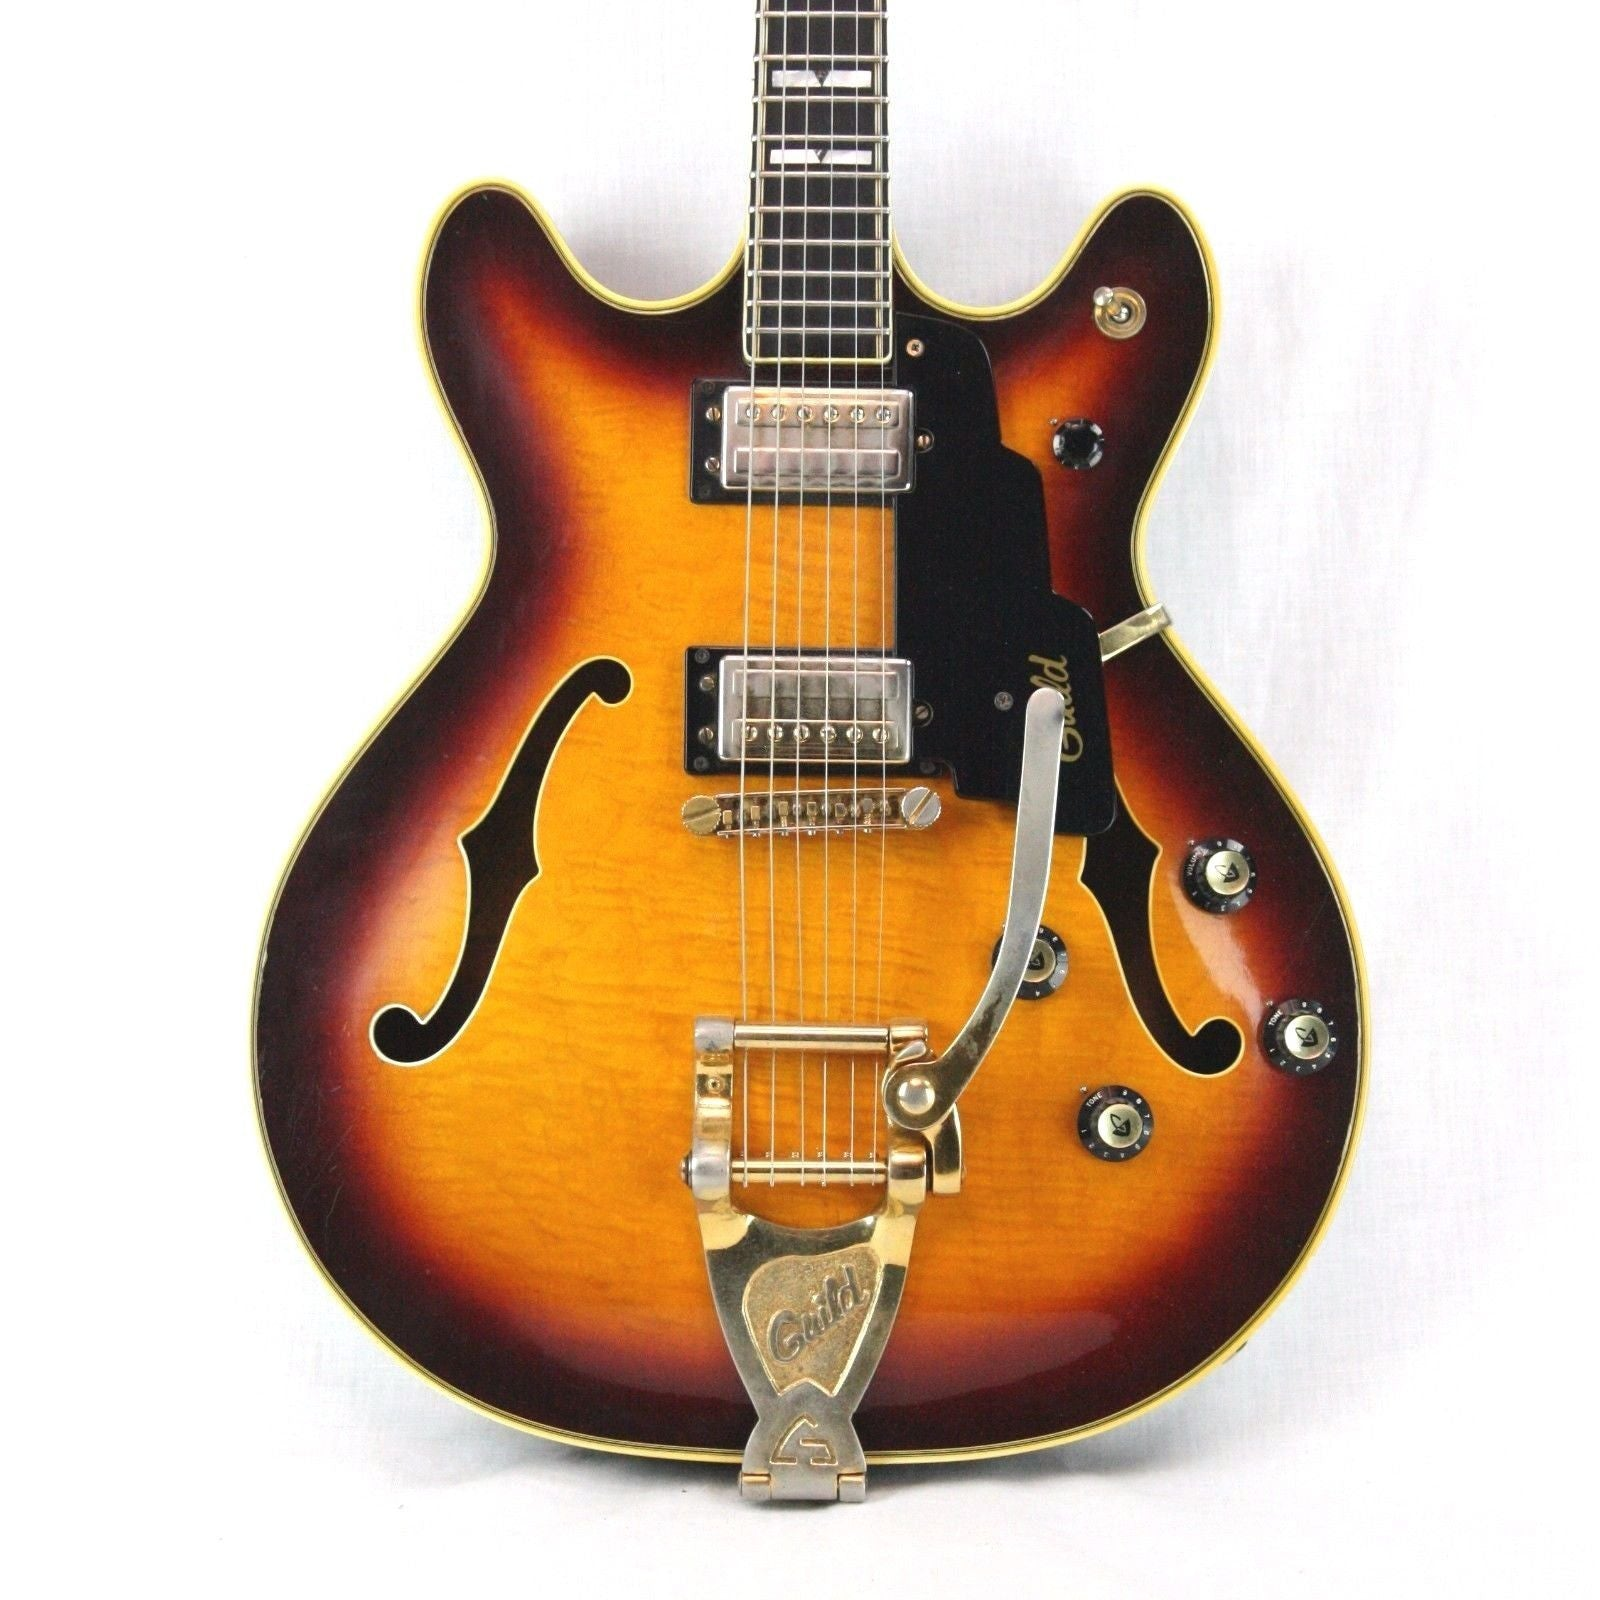 1974 Guild Starfire VI Top of the Line Model! Sunburst SF 6 Made in USA! Flamed!